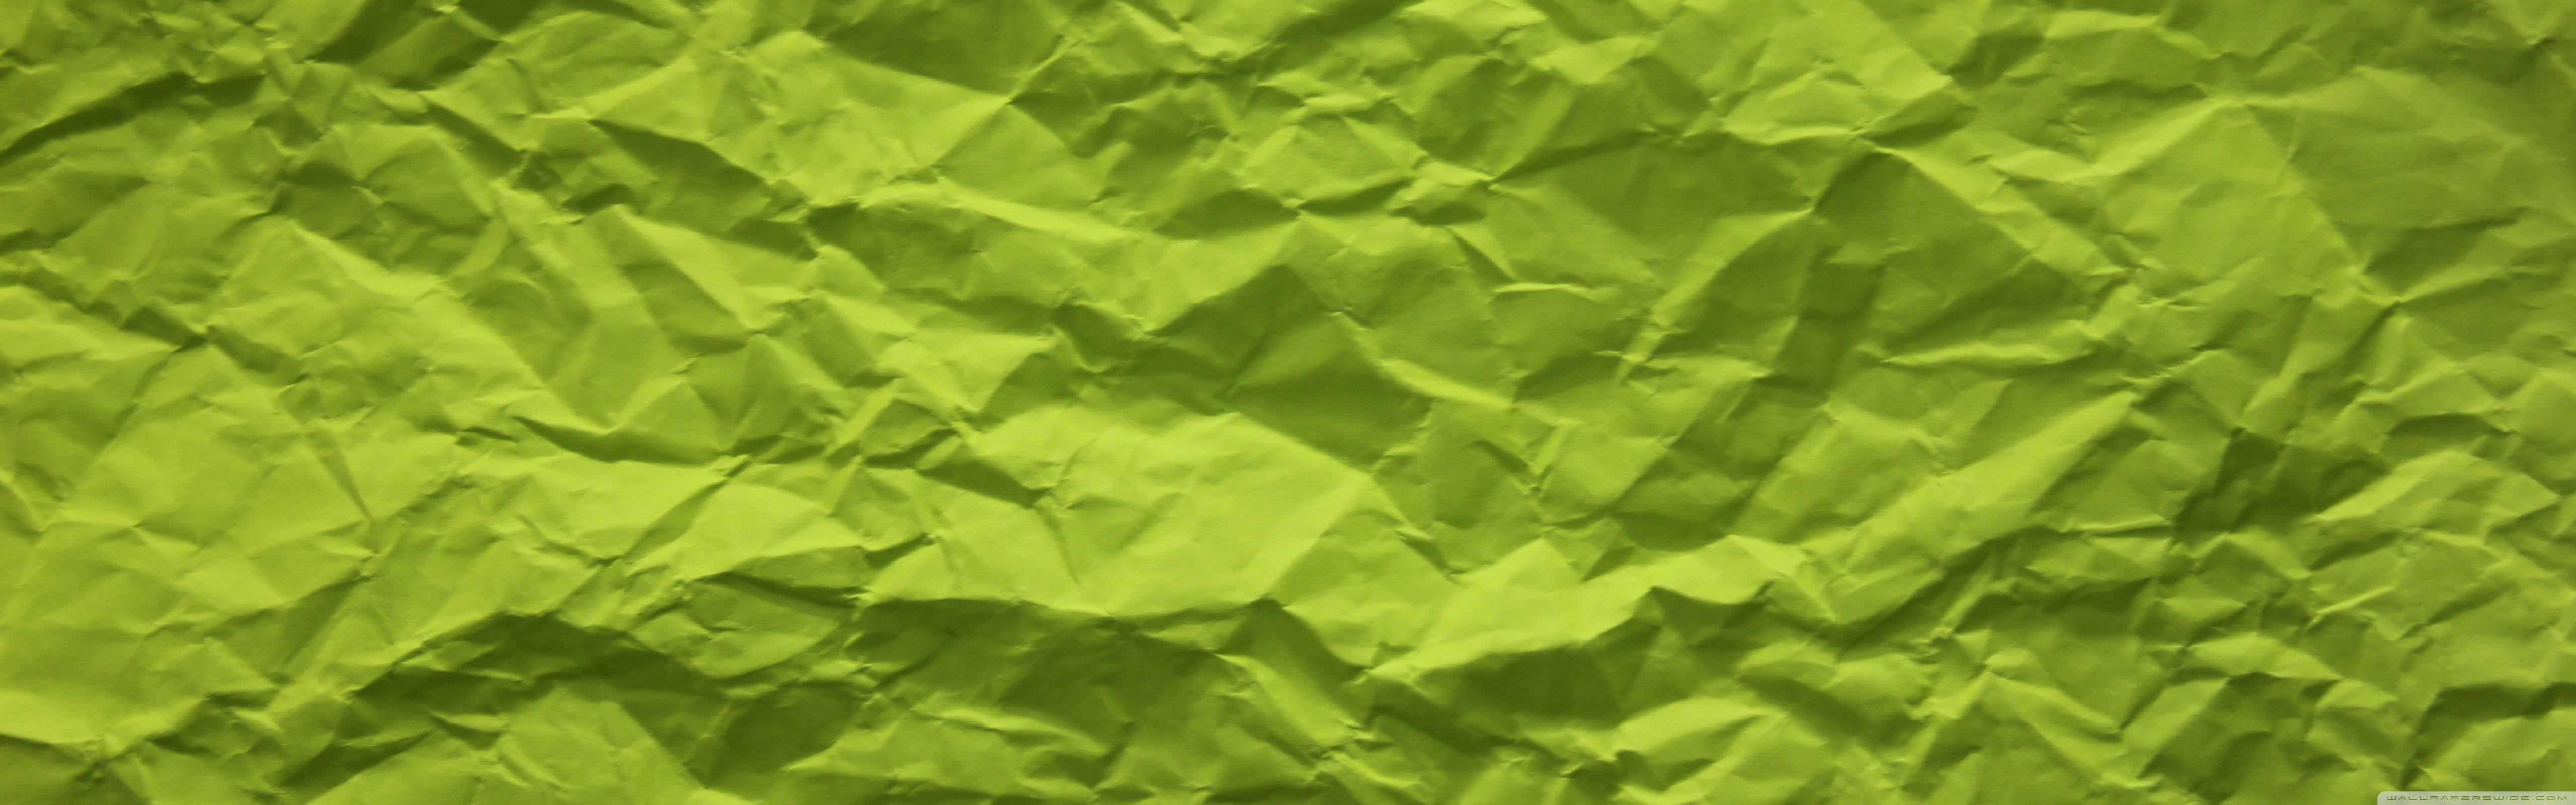 Green Texture 4K HD Desktop Wallpaper for Dual Monitor 5120x1600